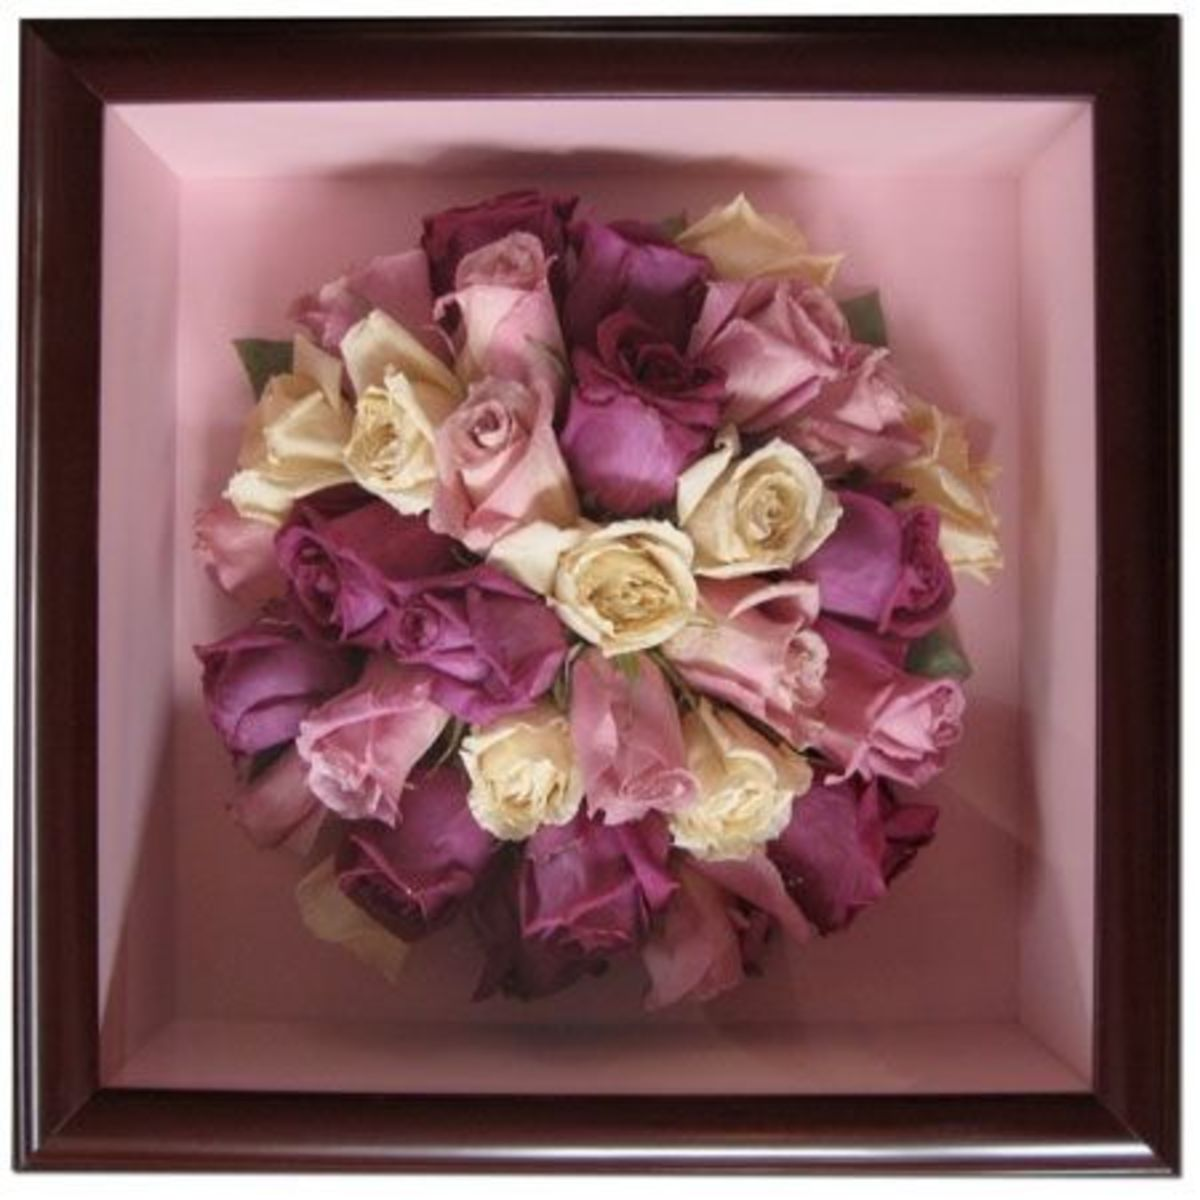 freeze dried rose bouquet